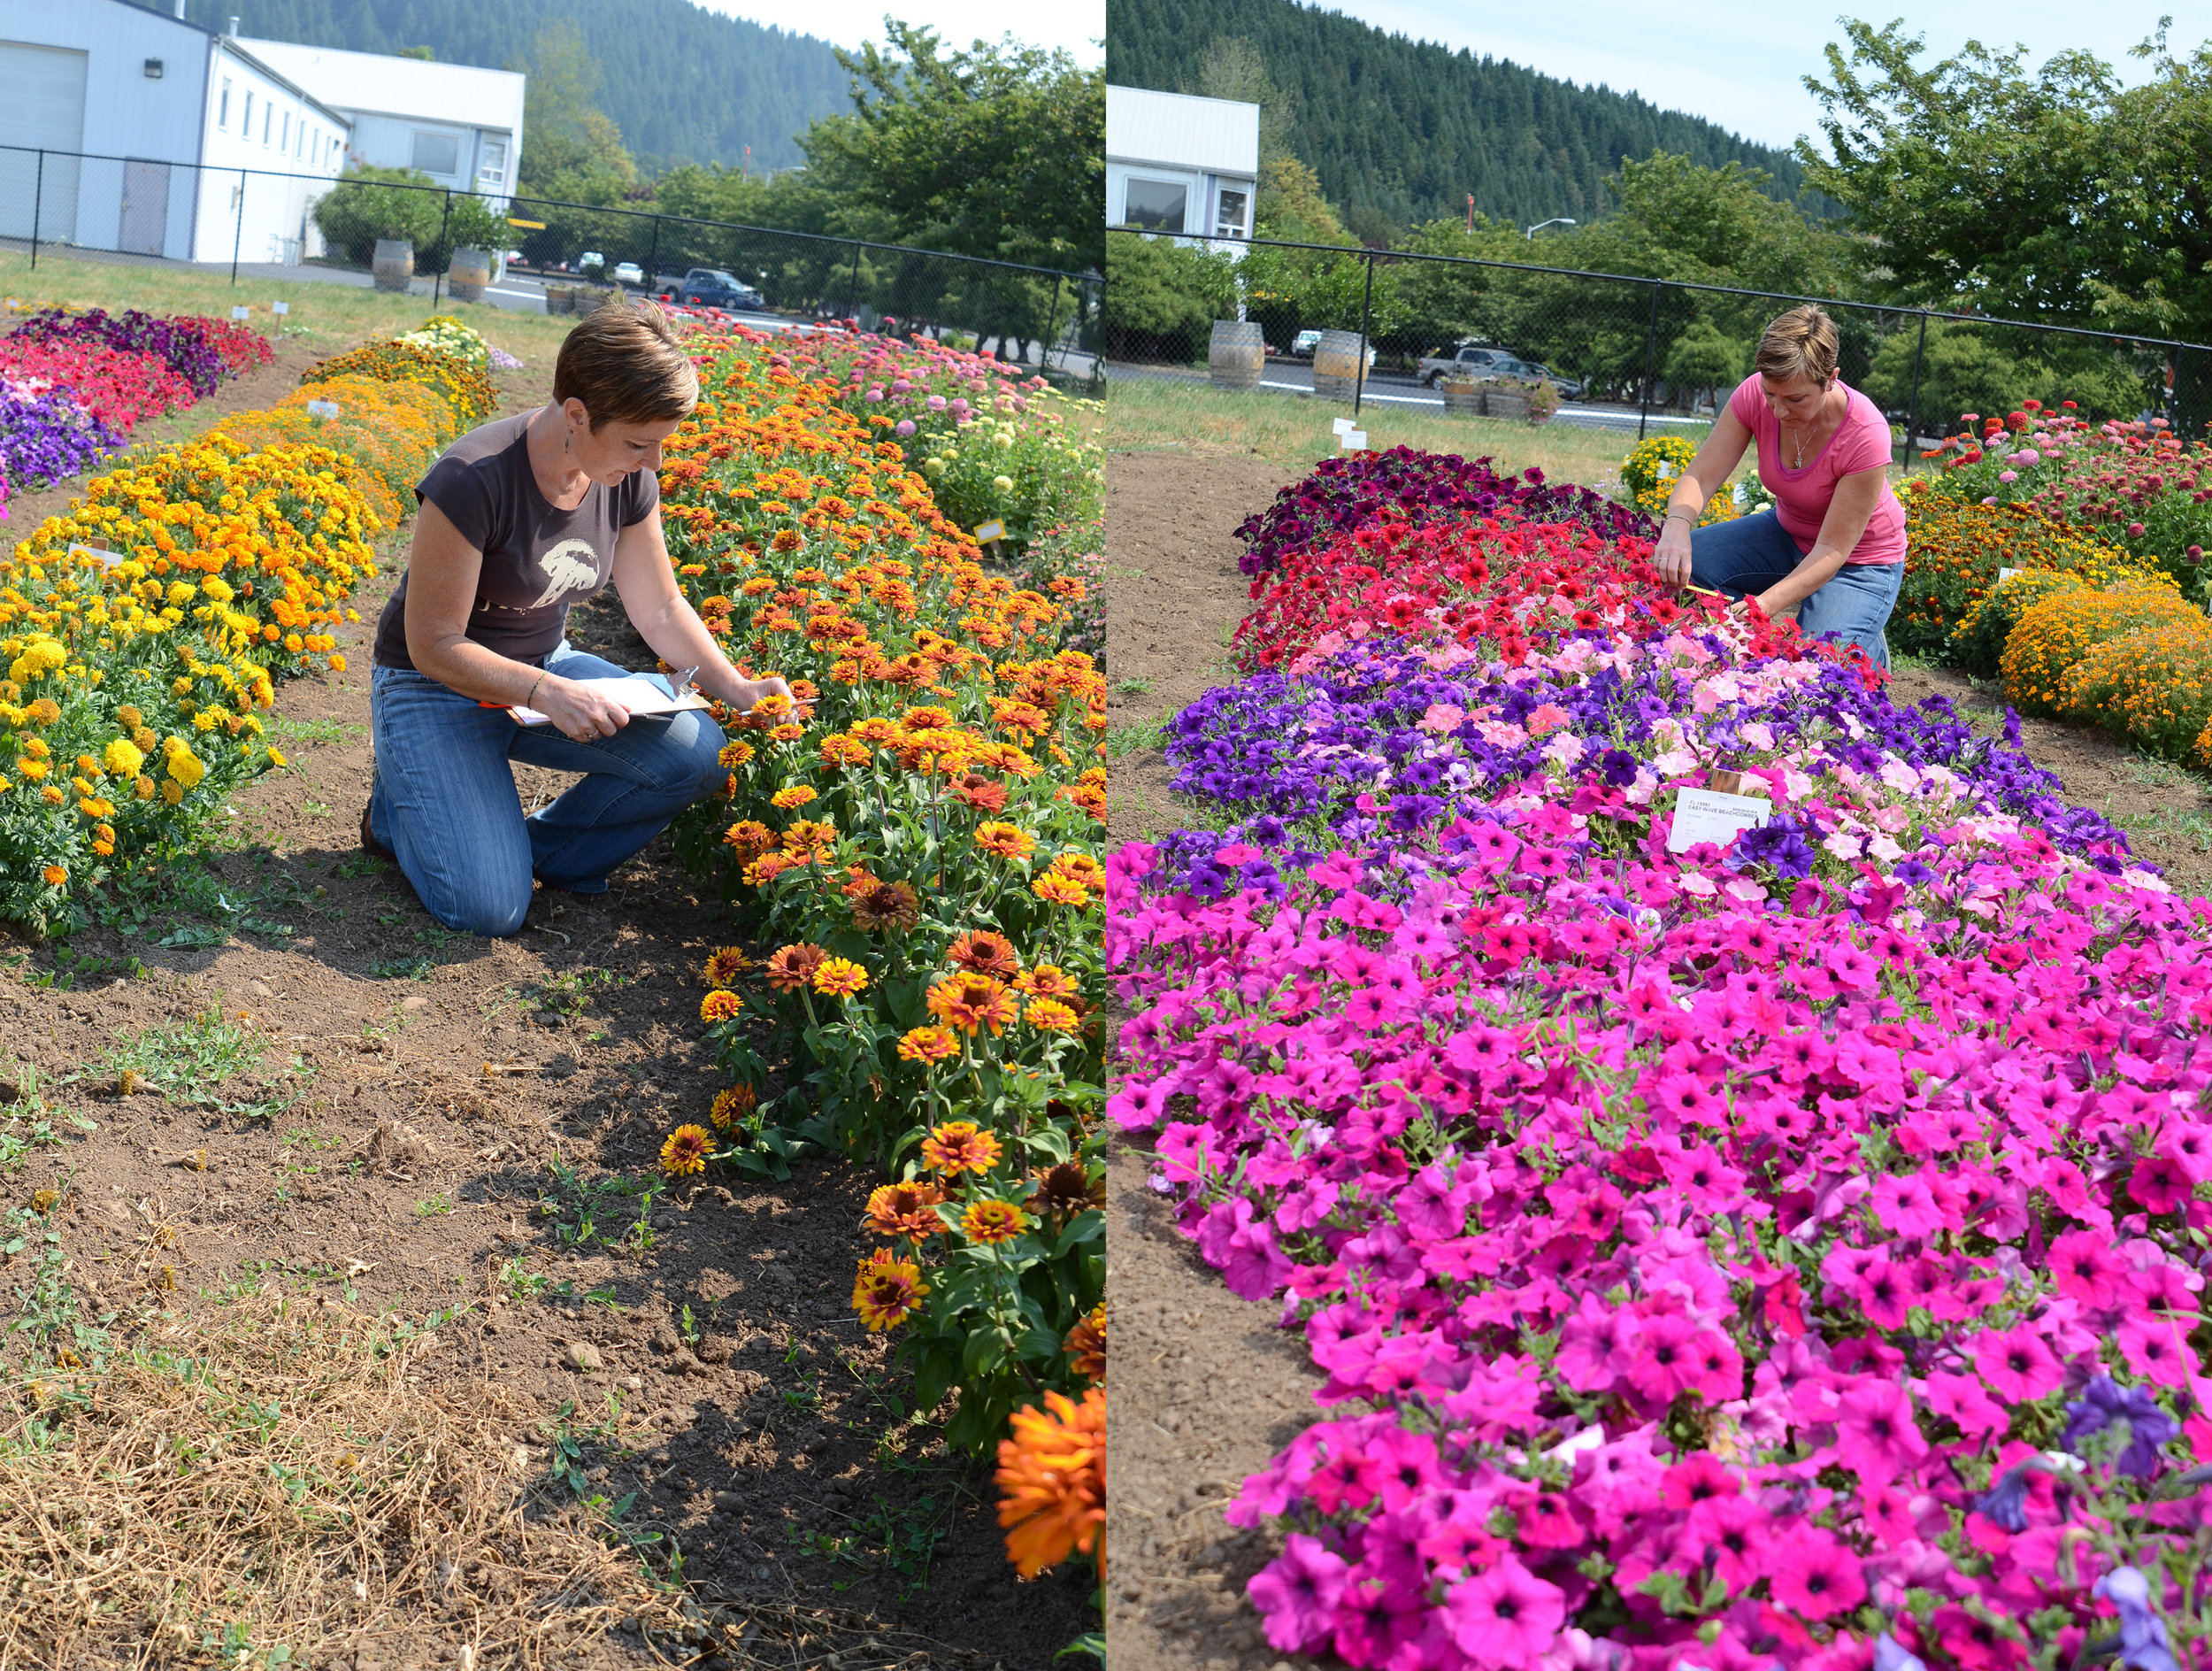 Competition in the flower trials is stiff with every flower vying for attention. Evaluating all these gorgeous varieties is a tough job, but somebody's got to do it!